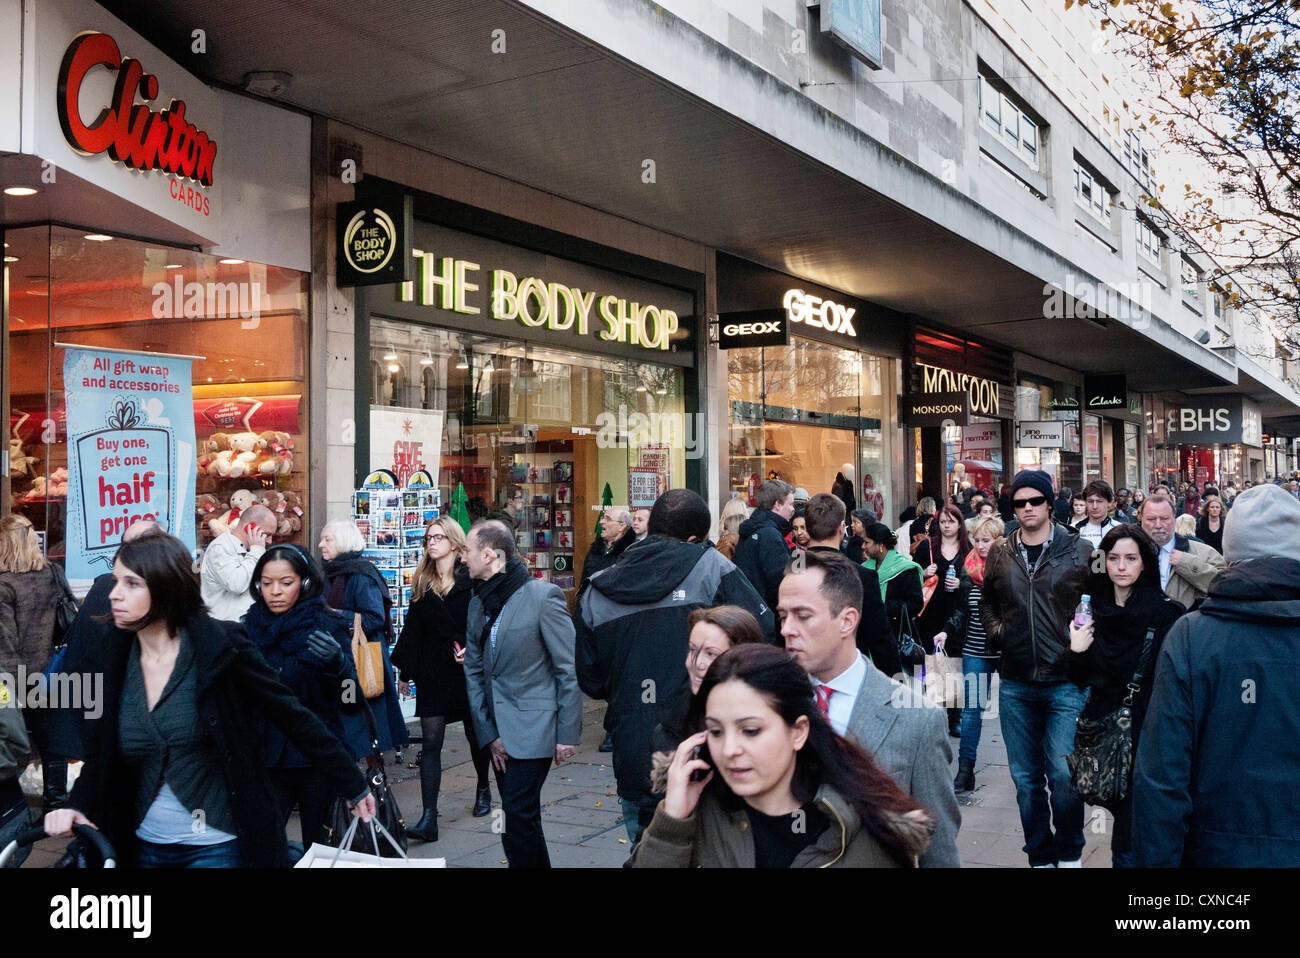 d0729300ac1 Christmas shoppers in Oxford Street, London, showing Clinton Cards, Body  Shop, Geox, Monsoon